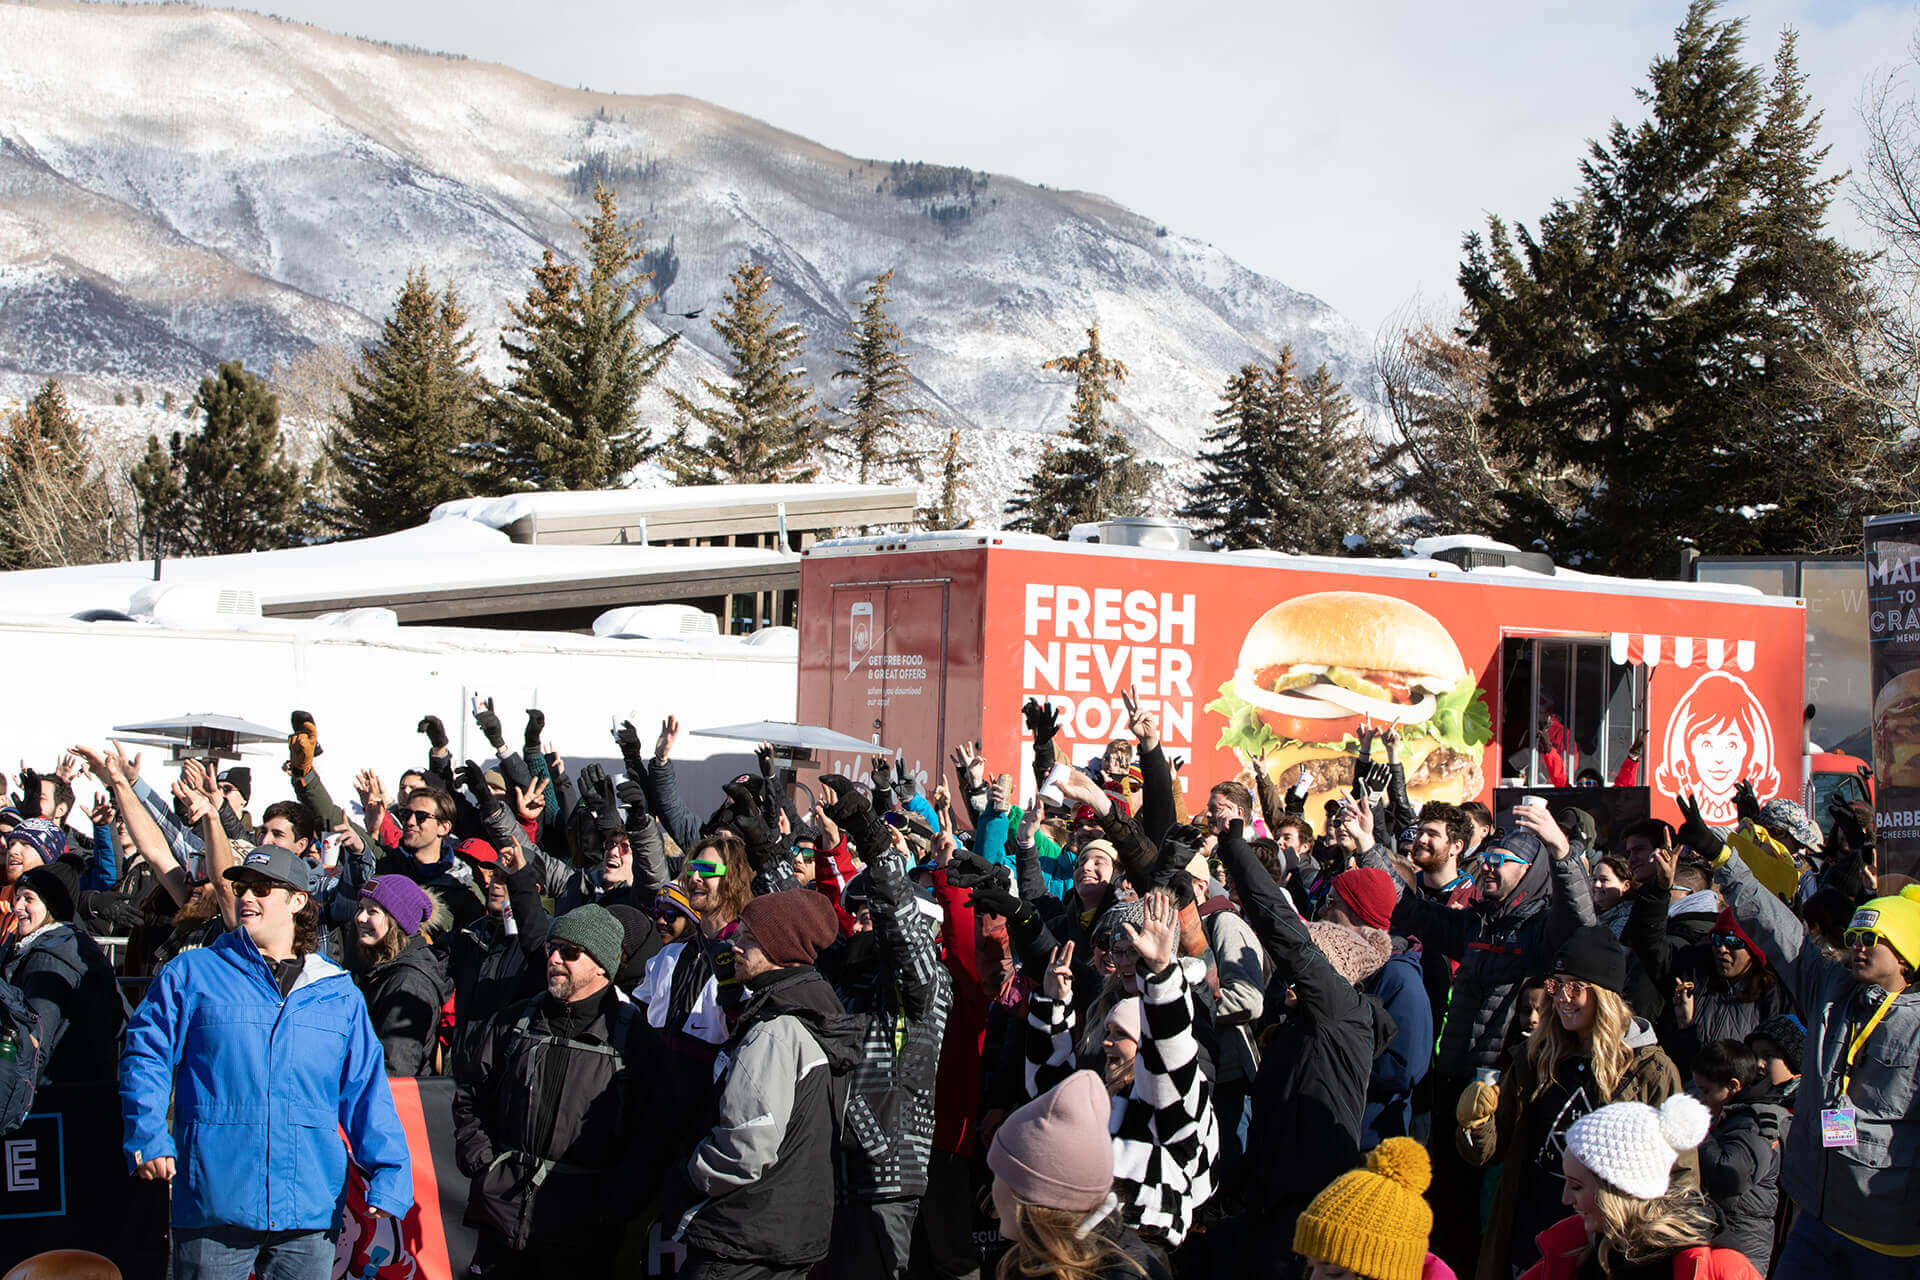 Experiential agency TMA took Wendy's brand promise of serving up fresh-never-frozen beef to the extreme at the 2019 Winter X Games, which hosted their new Made-to-Crave Burger product launch activation.